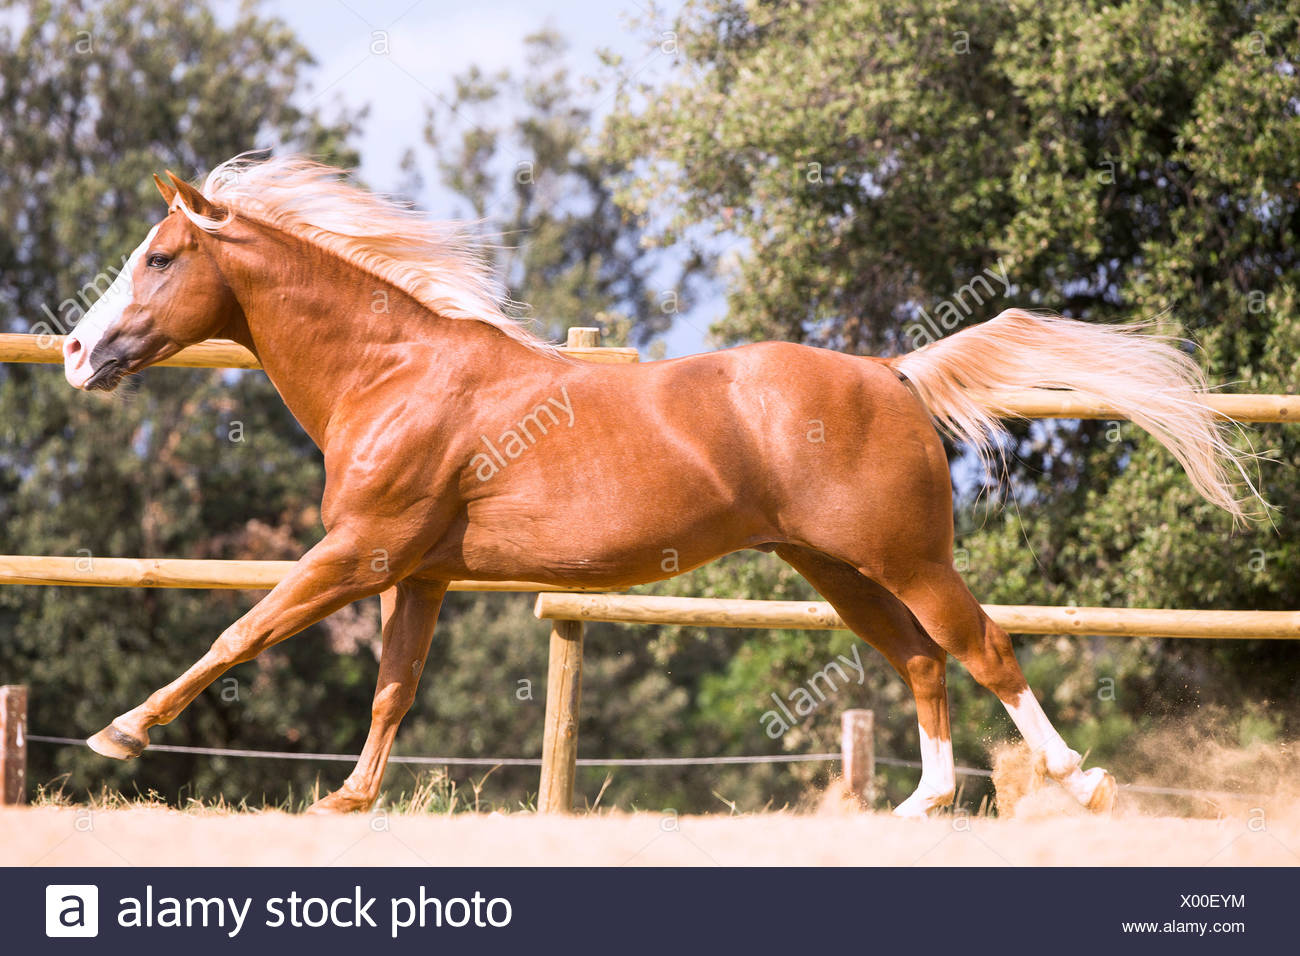 Paint Horse Chestnut Stallion Galloping In A Paddock Italy Stock